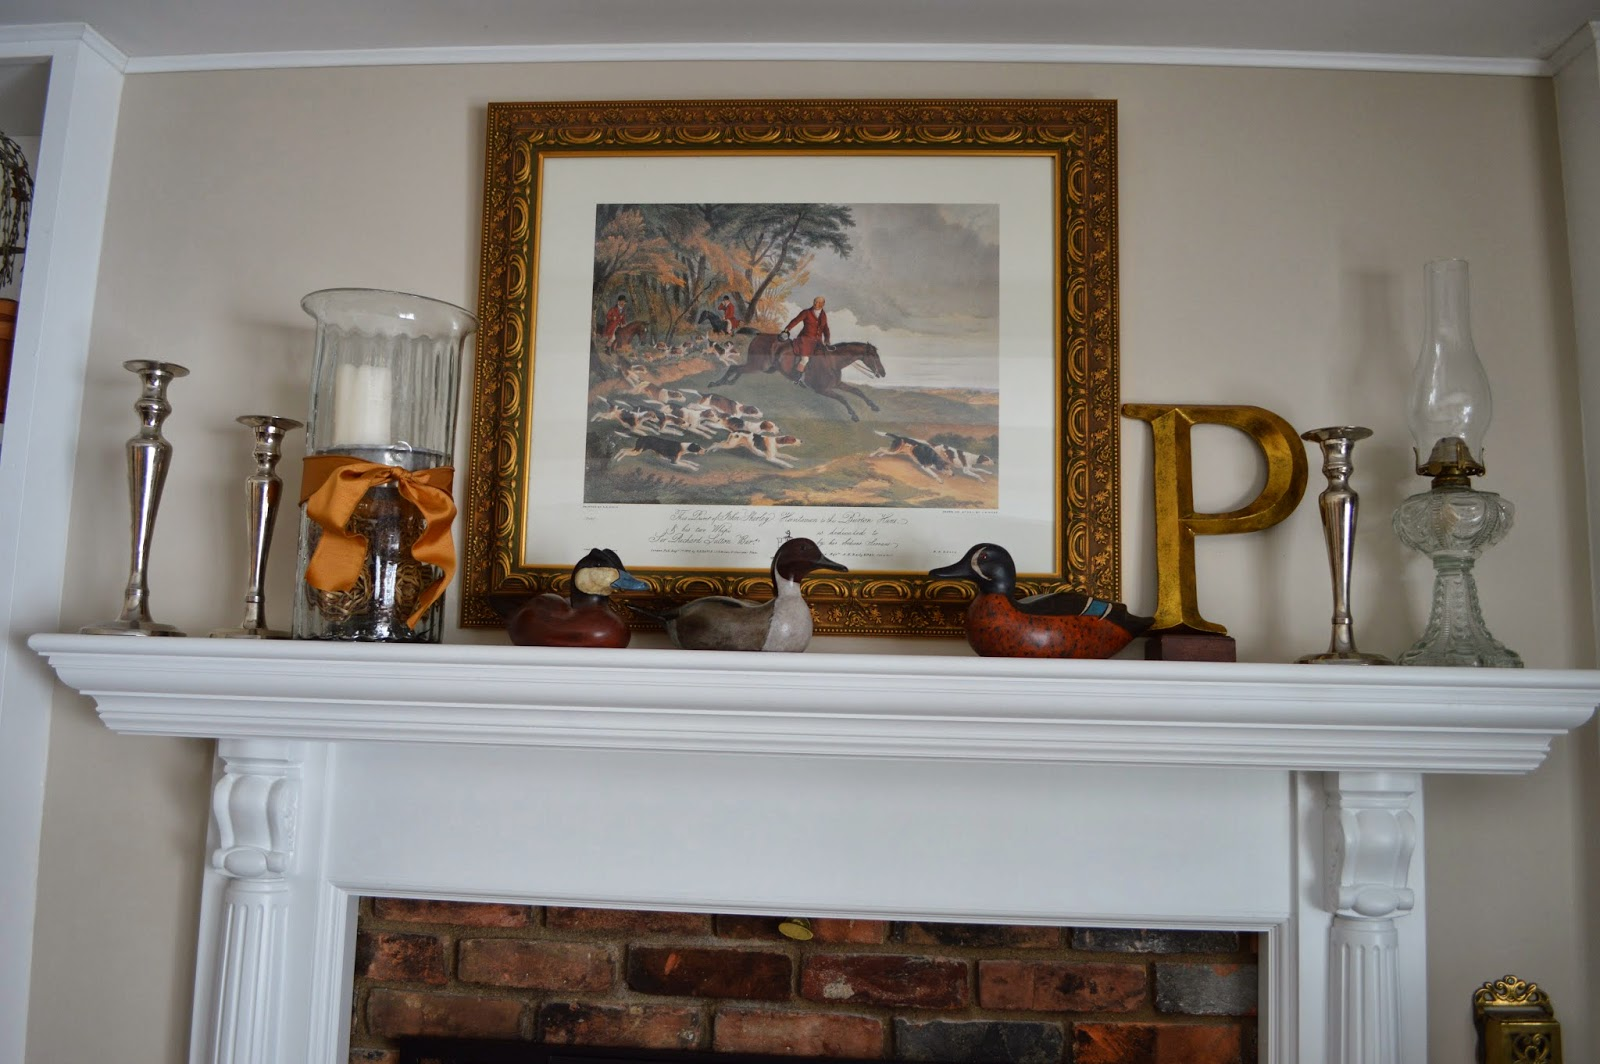 Blue Ribbon Kitchen STYLING AN EVERYDAY MANTEL